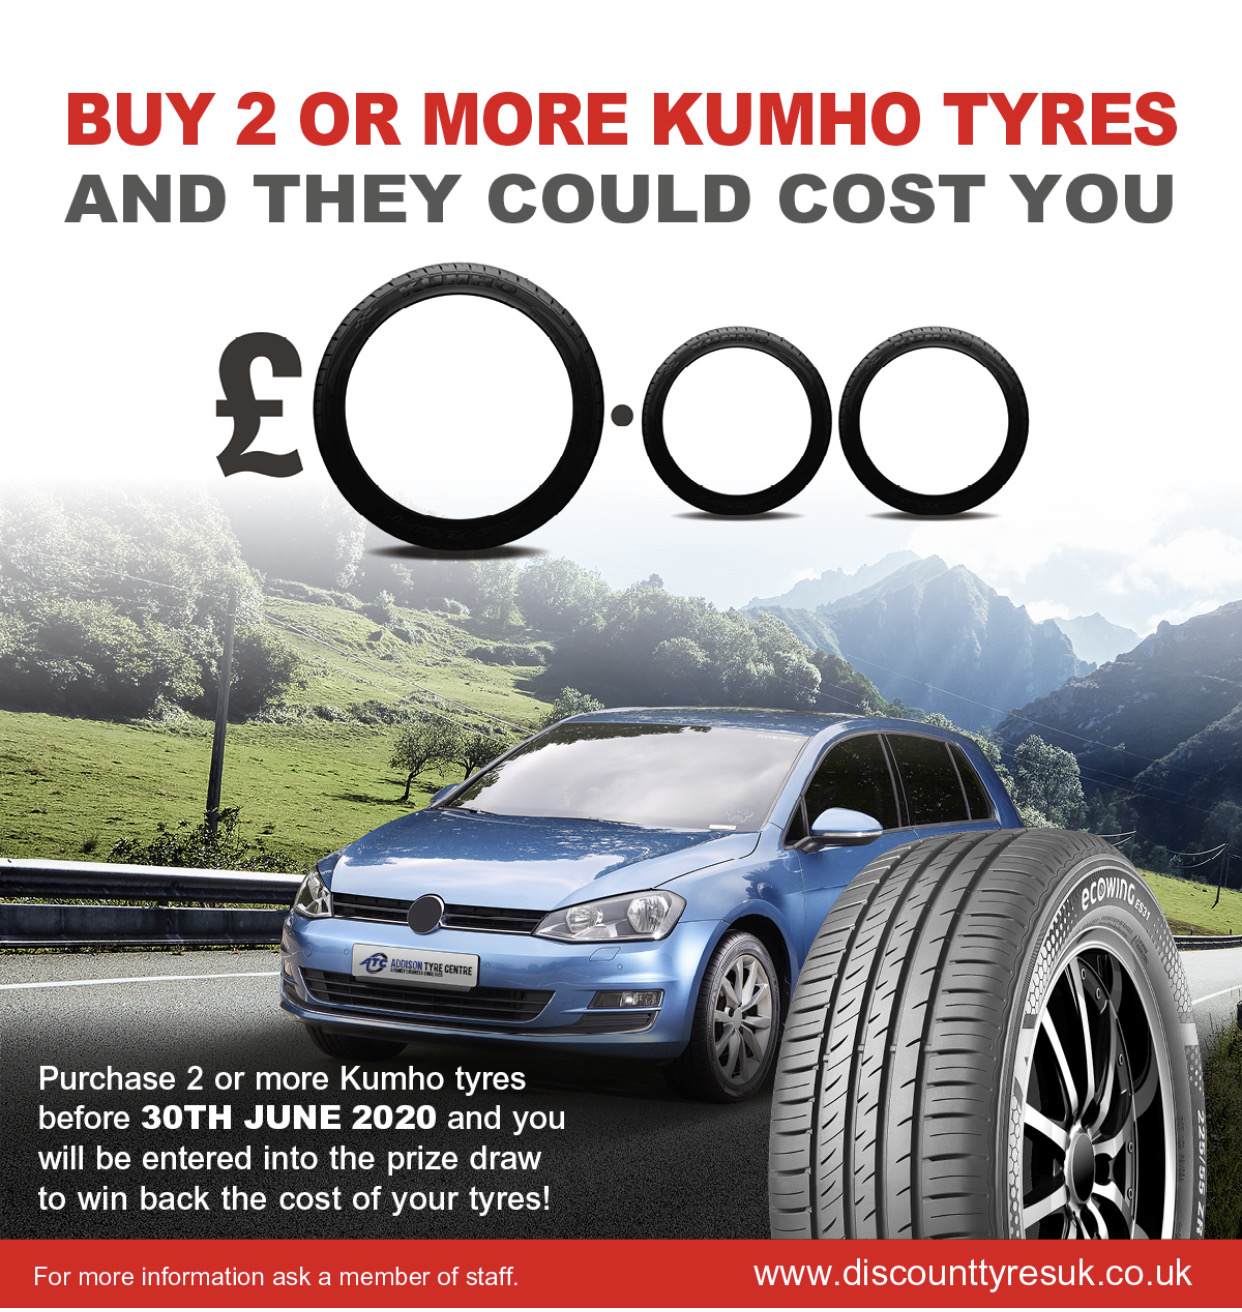 Buy 4 Kumho tyres and enter our prize dr